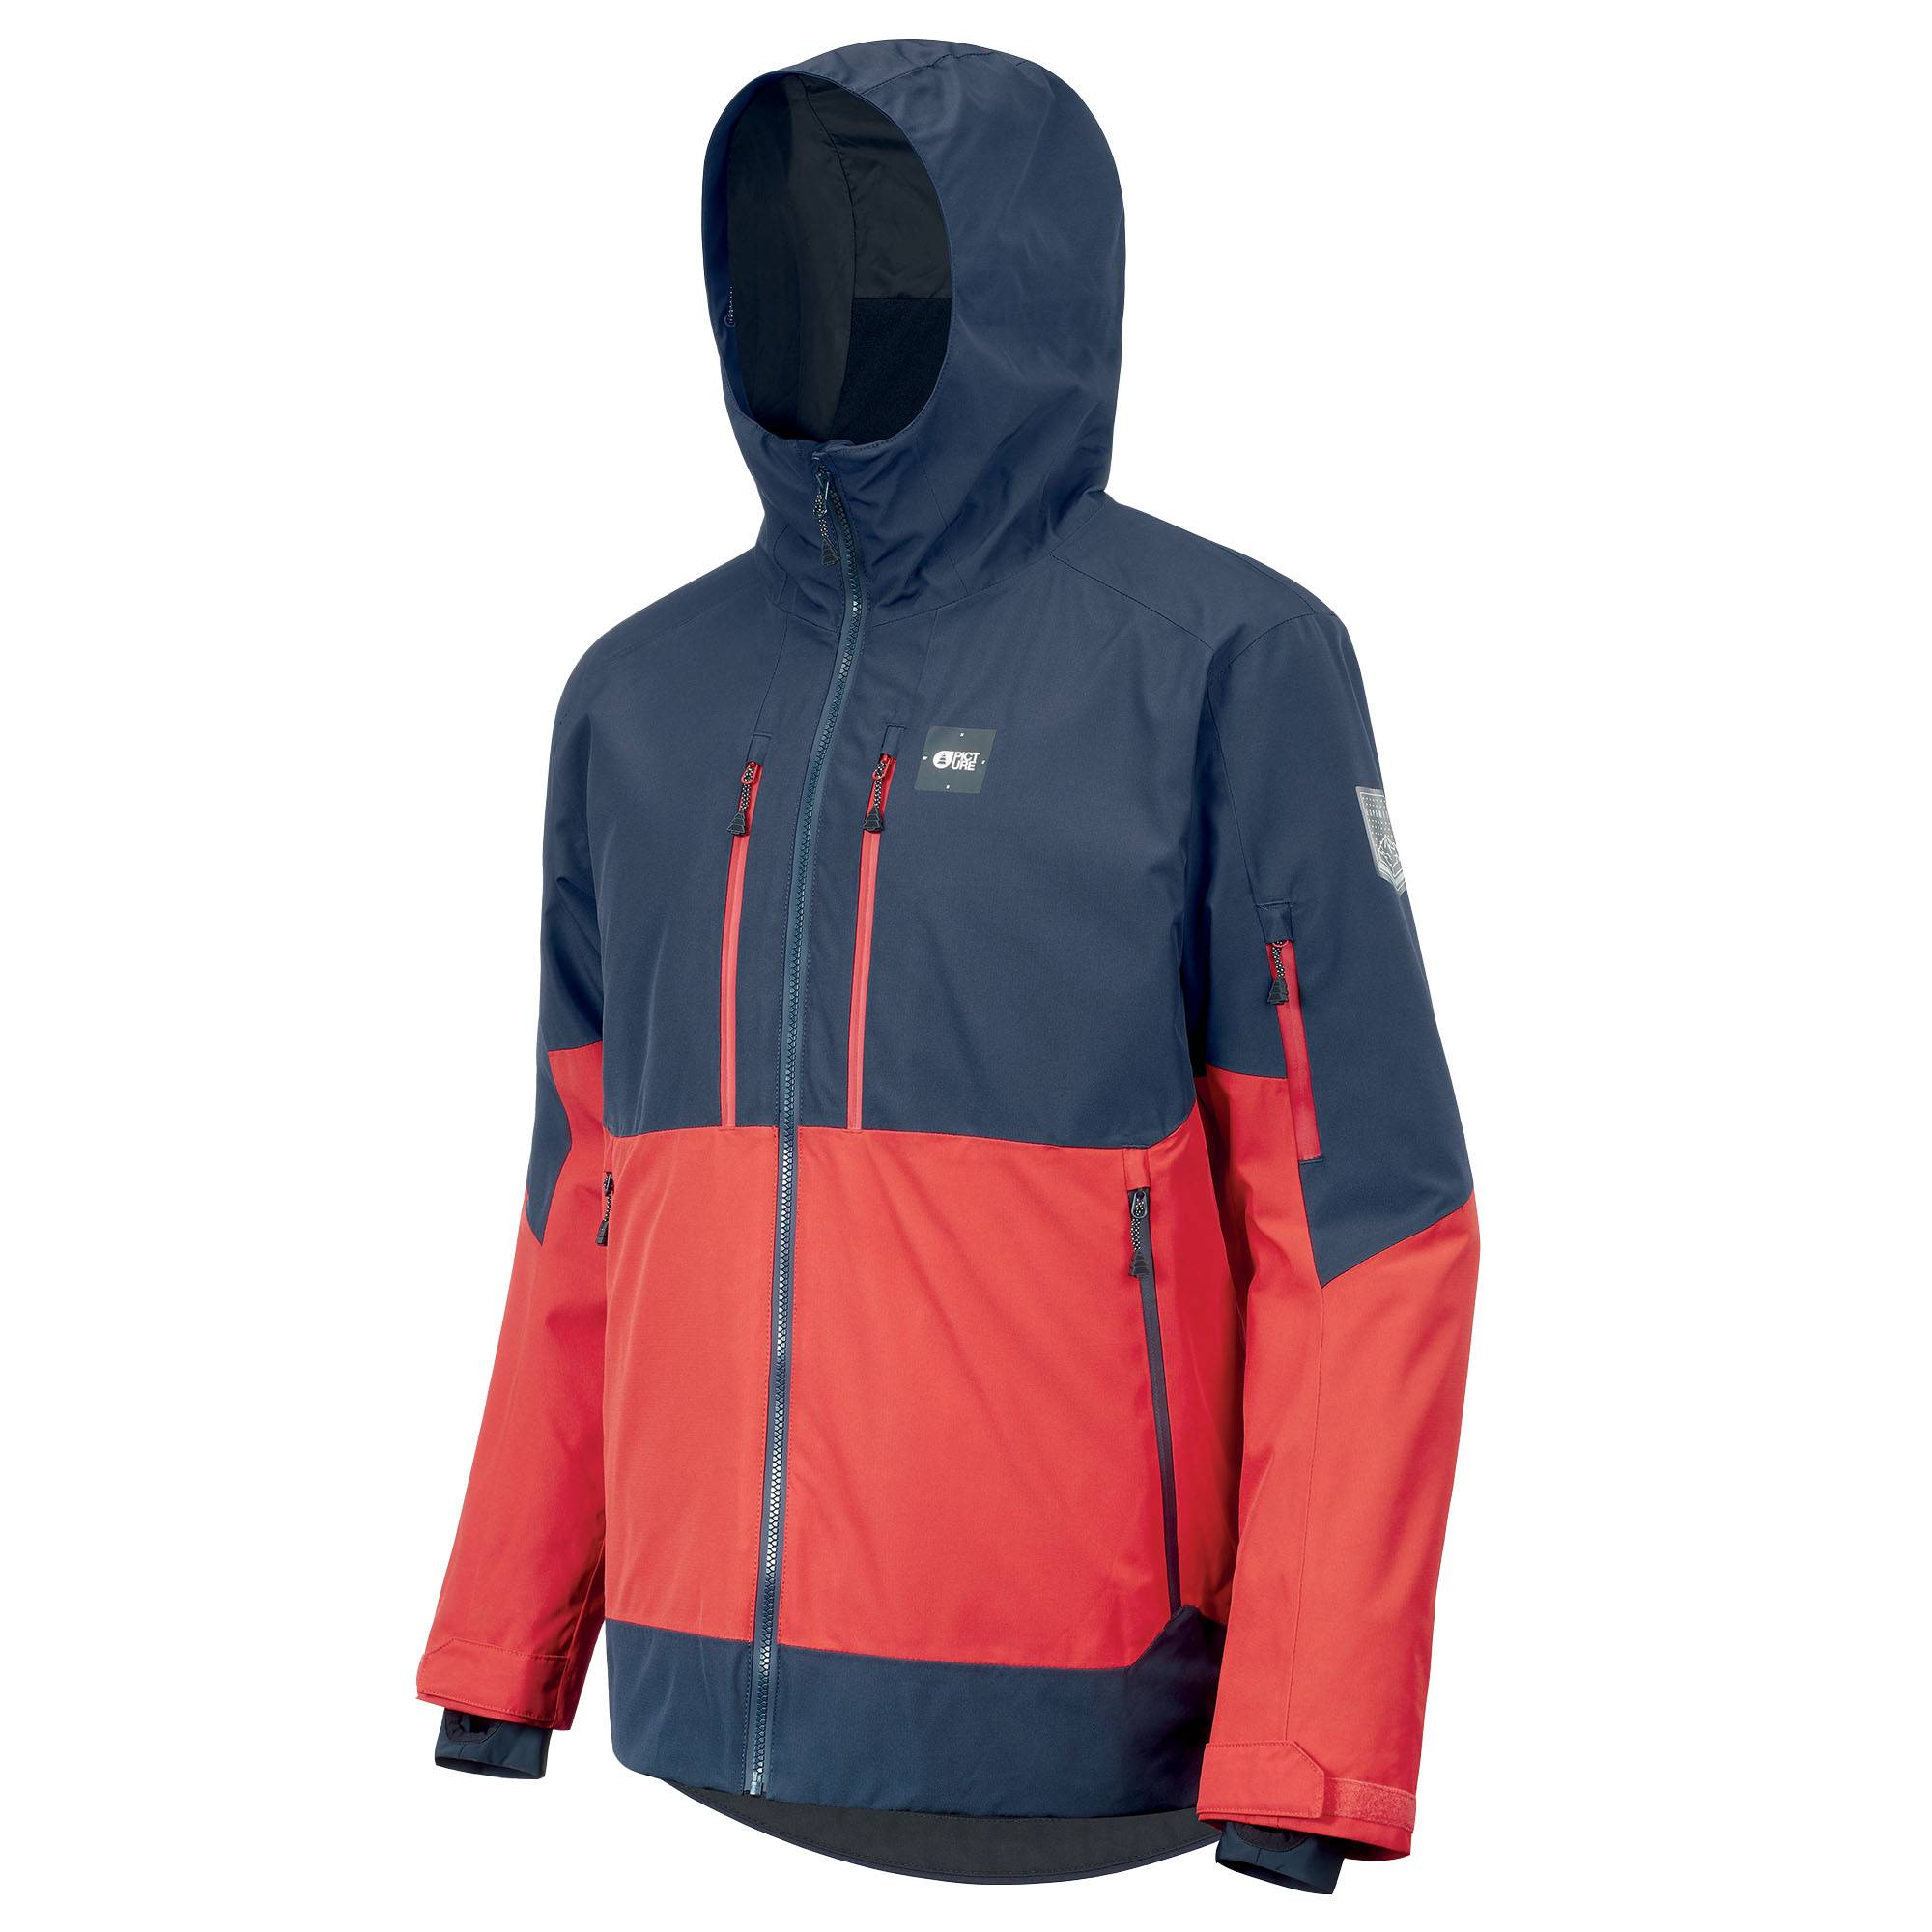 Picture Organic Clothing Men's Duncan 3 In 1 Snow Jacket  - Red - Size: Small